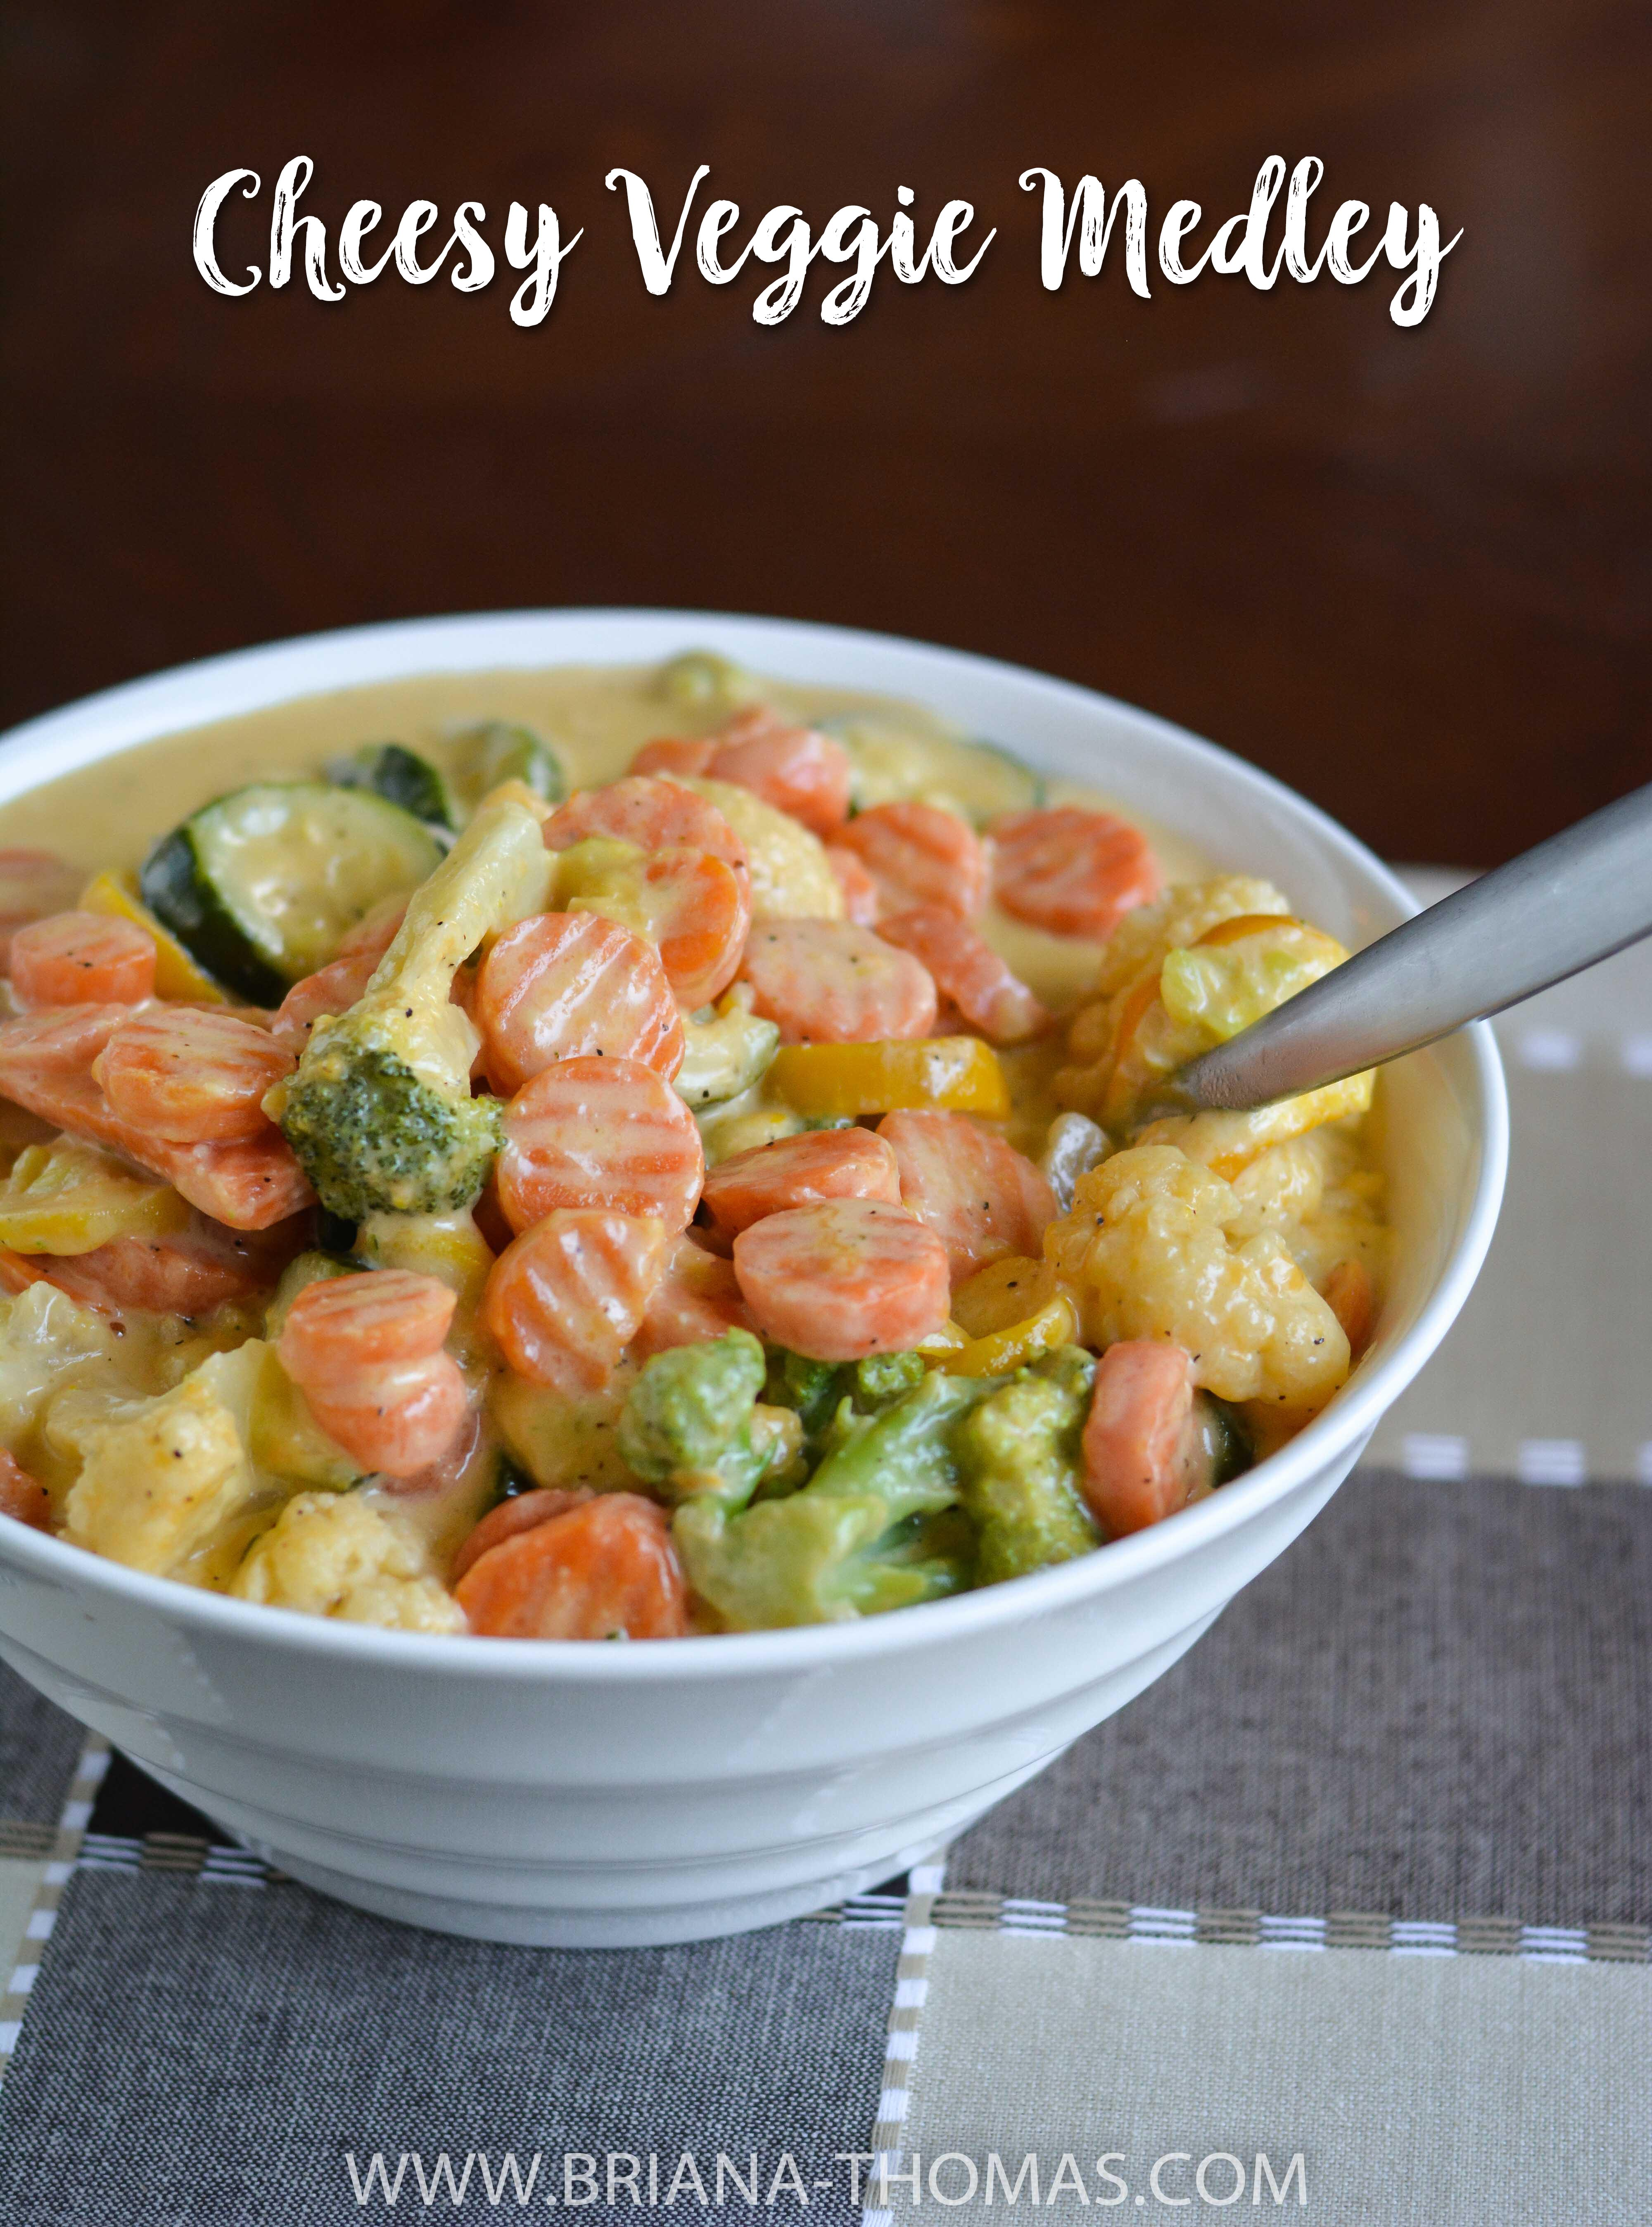 This Cheesy Veggie Medley has a Velveeta-like cheese sauce and reheats beautifully! Perfect for company. THM S, low carb, gluten free